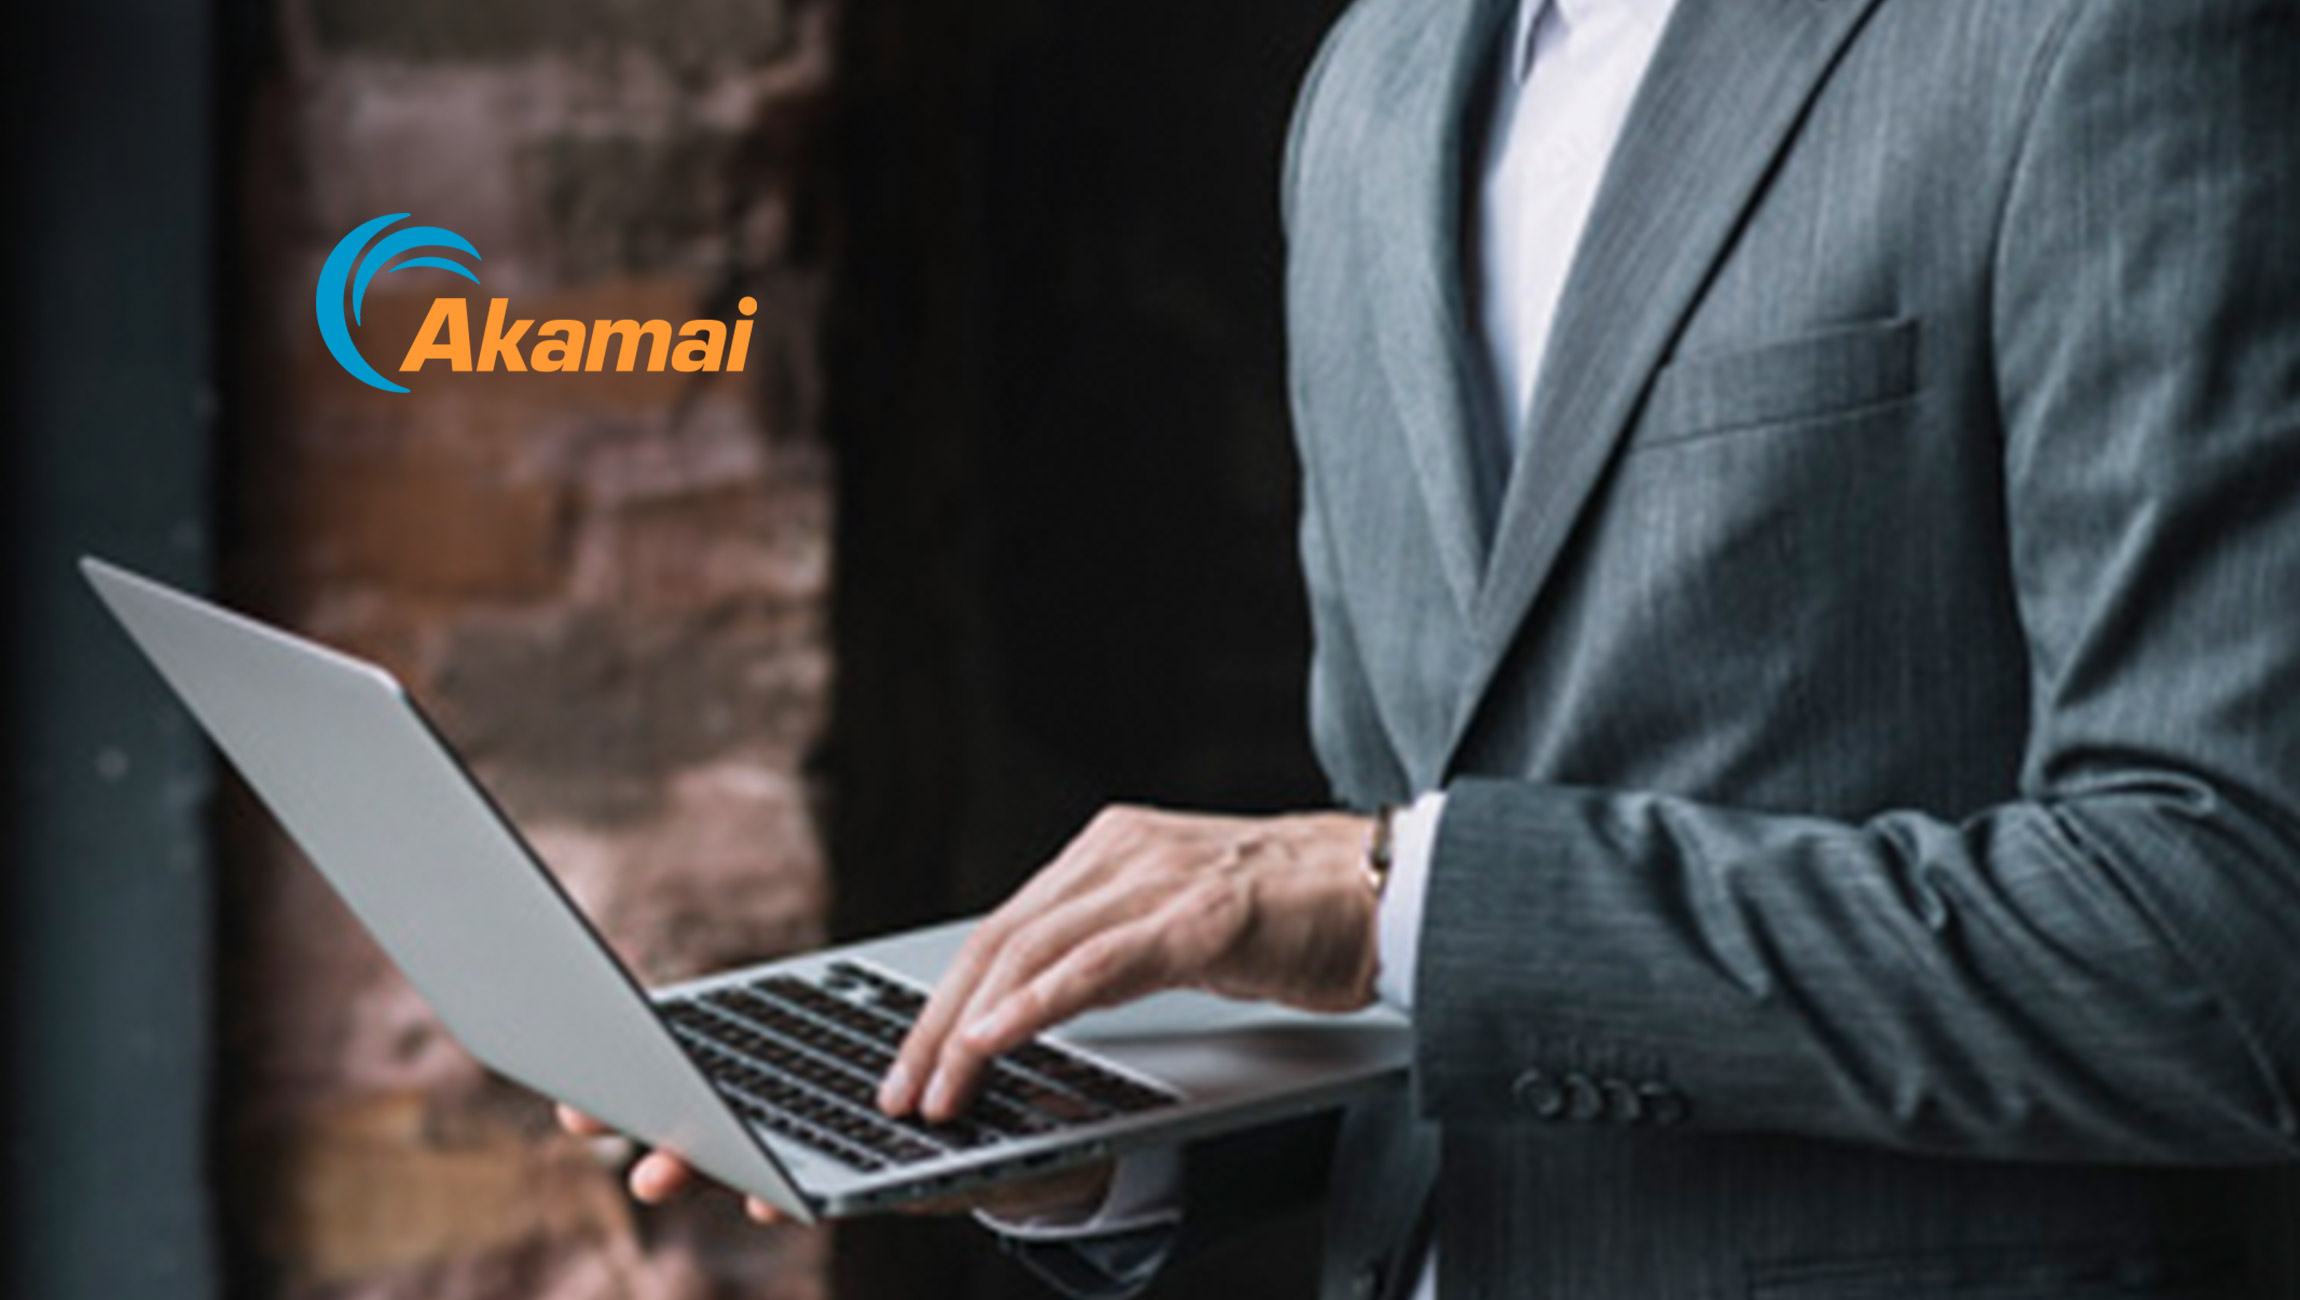 Akamai Technologies To Expand Presence In Latin America By Acquiring Exceda